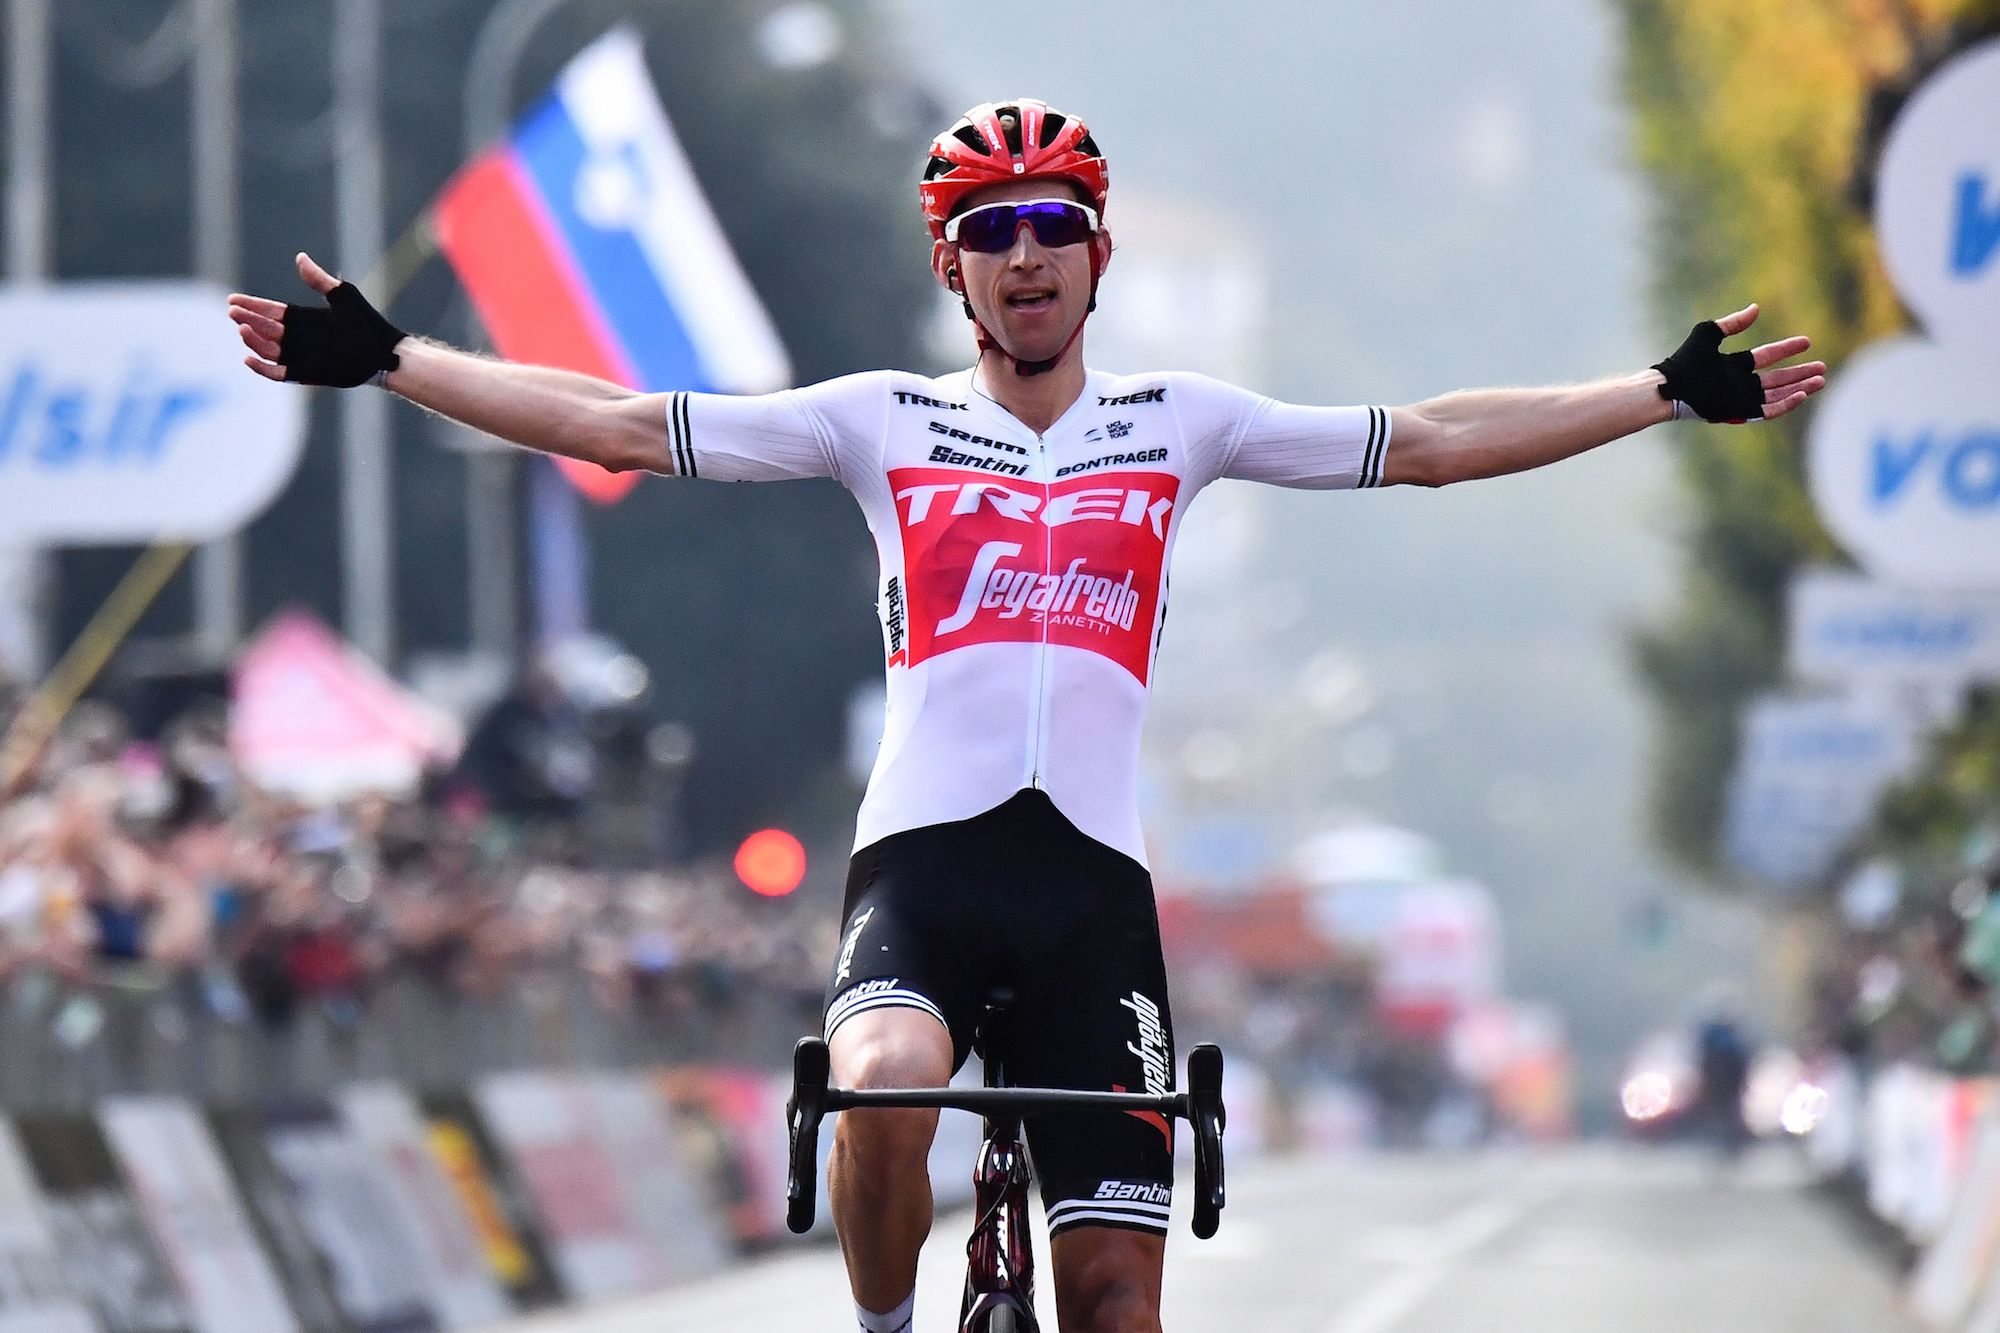 Bauke Mollema wins first Monument with Il Lombardia 2019 victory